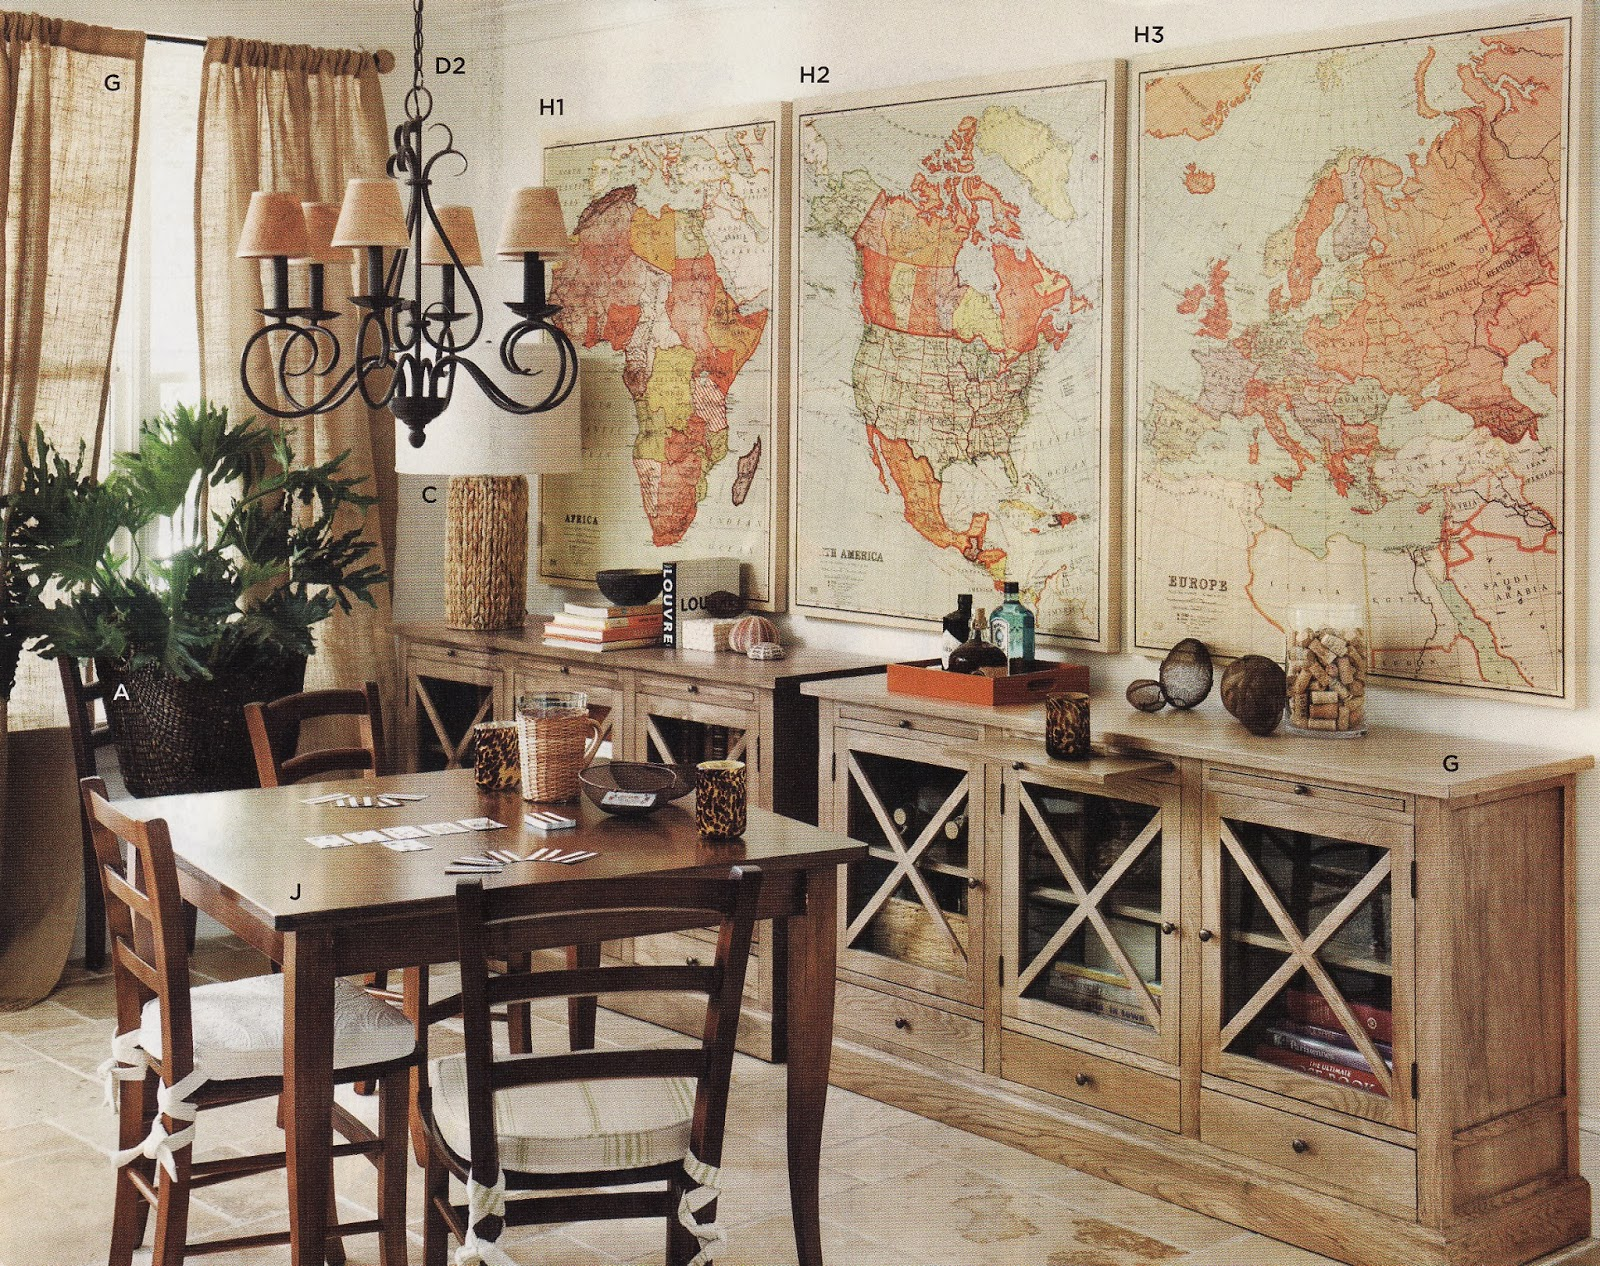 Creative juices decor oh for the love of maps home for Antique home decorations